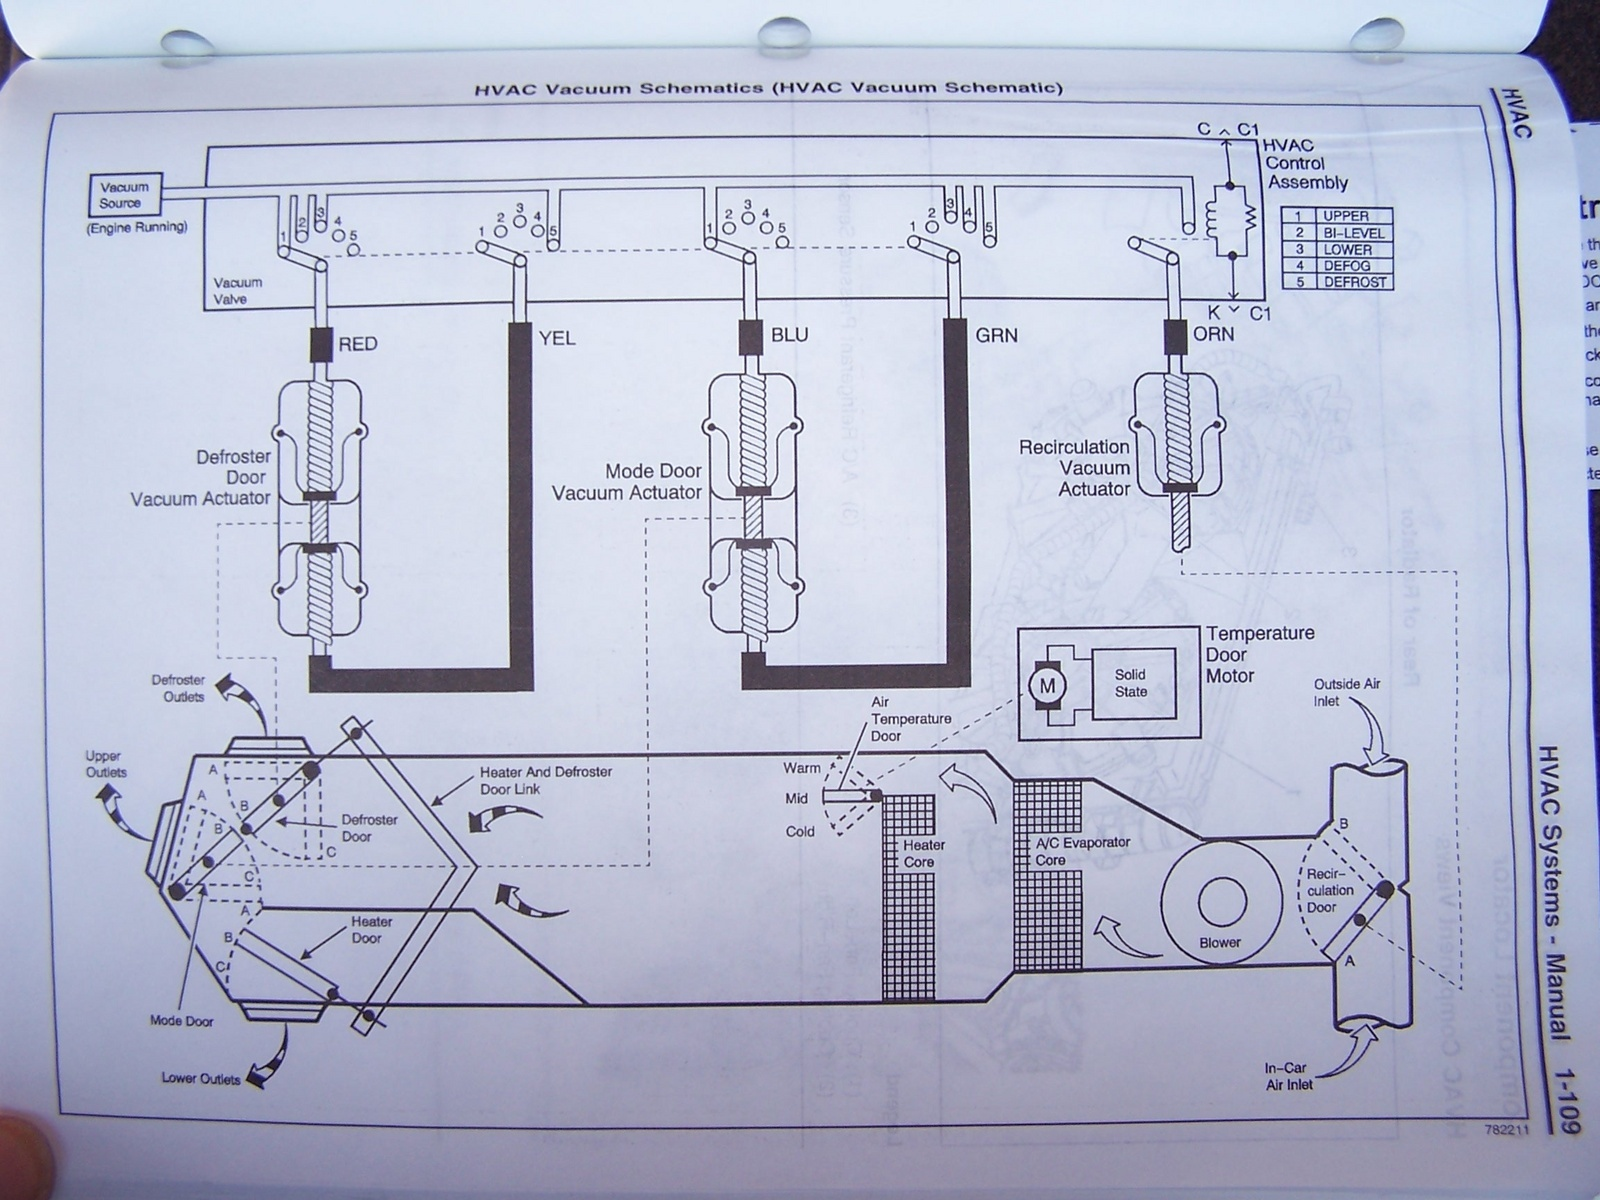 1967 Ford Mustang Stereo Wiring Diagram Pontiac Grand Prix Questions Why Does My Car Still Not